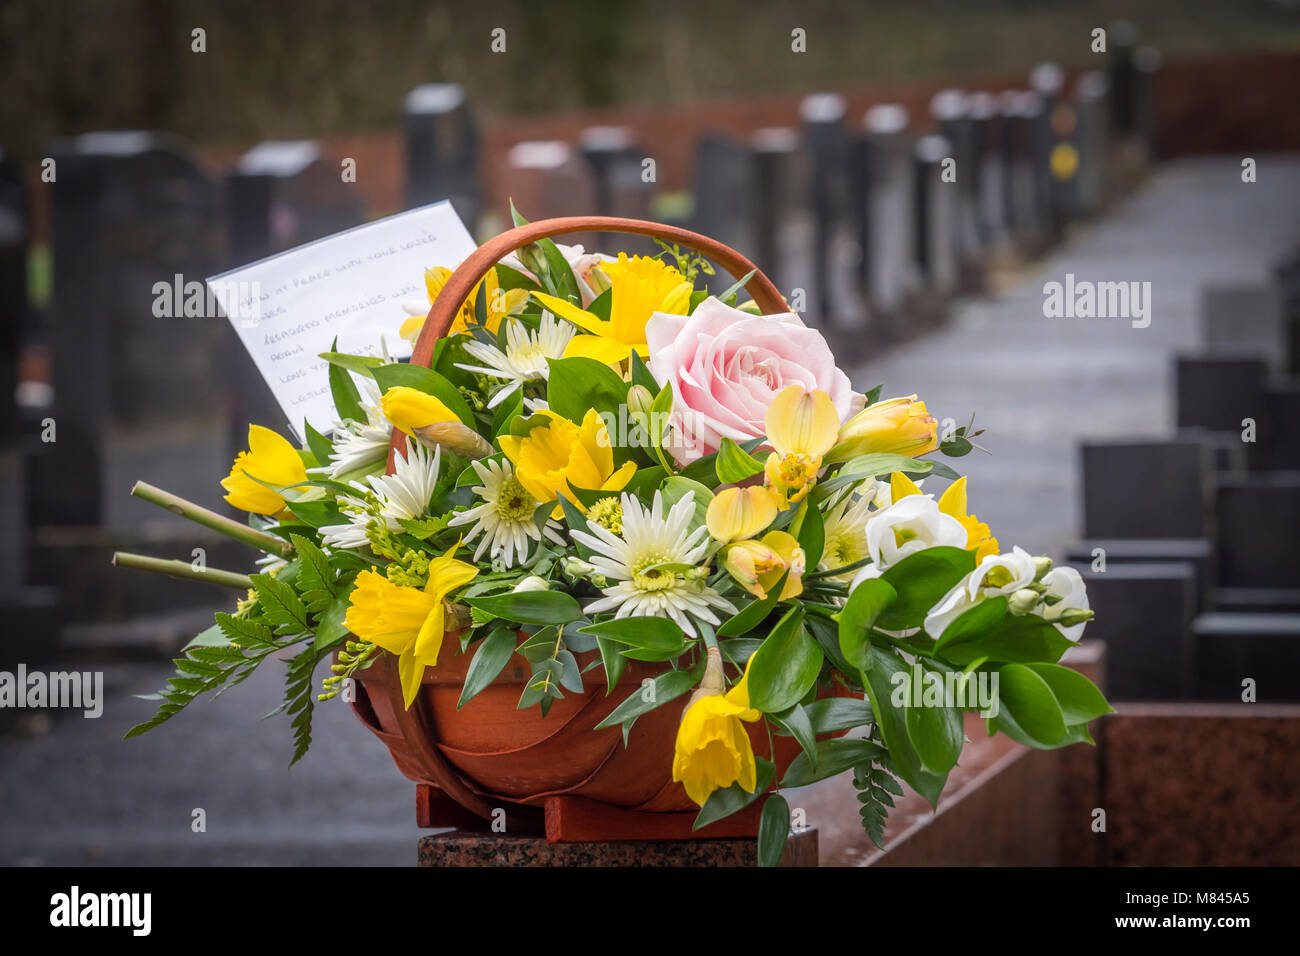 Funeral Flowers Mum Stock Photos Funeral Flowers Mum Stock Images